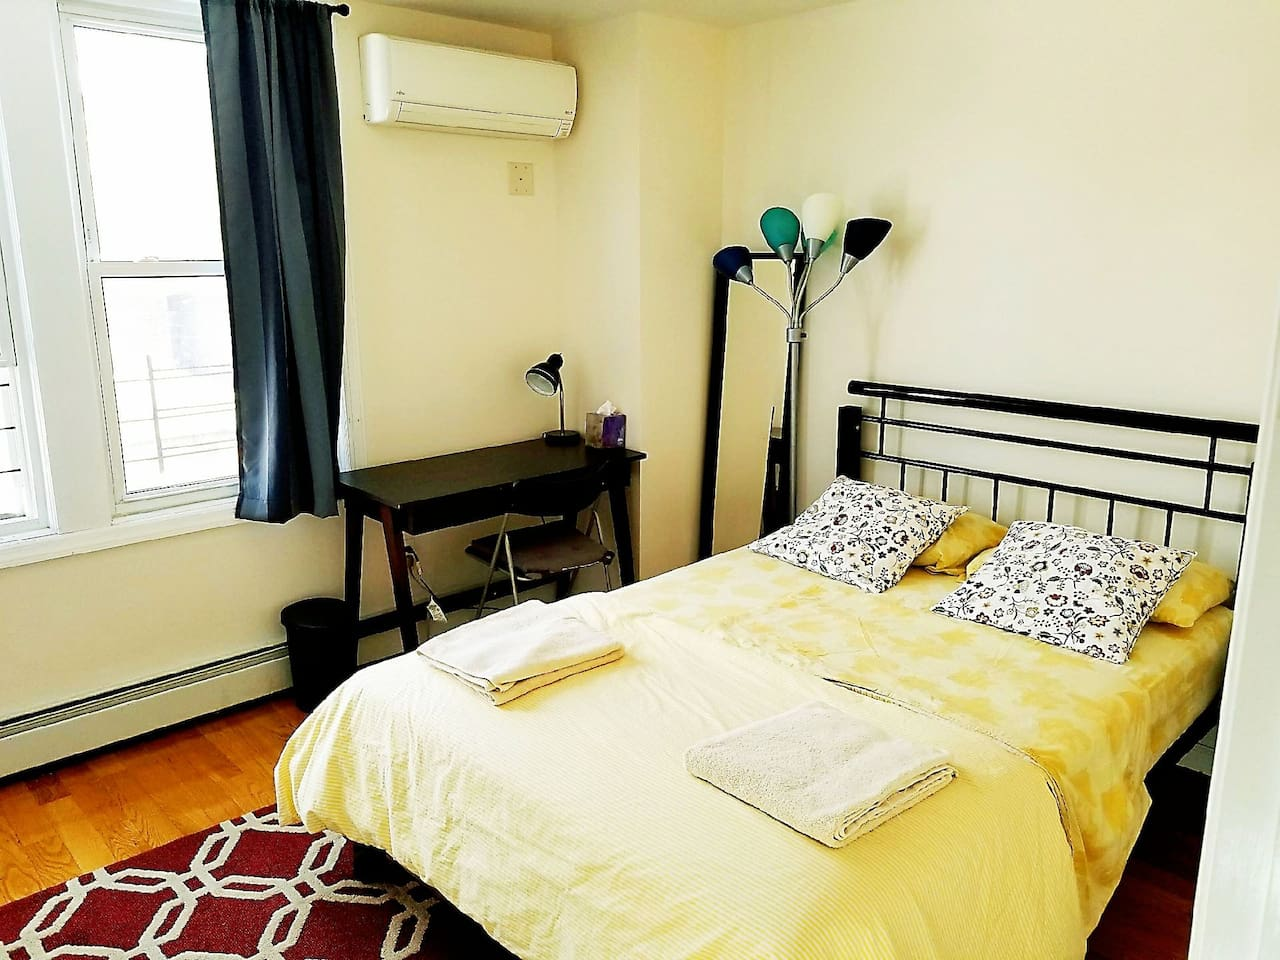 Fully furnished comfortable private bedroom with lot of sunshine. Work Friendly as well